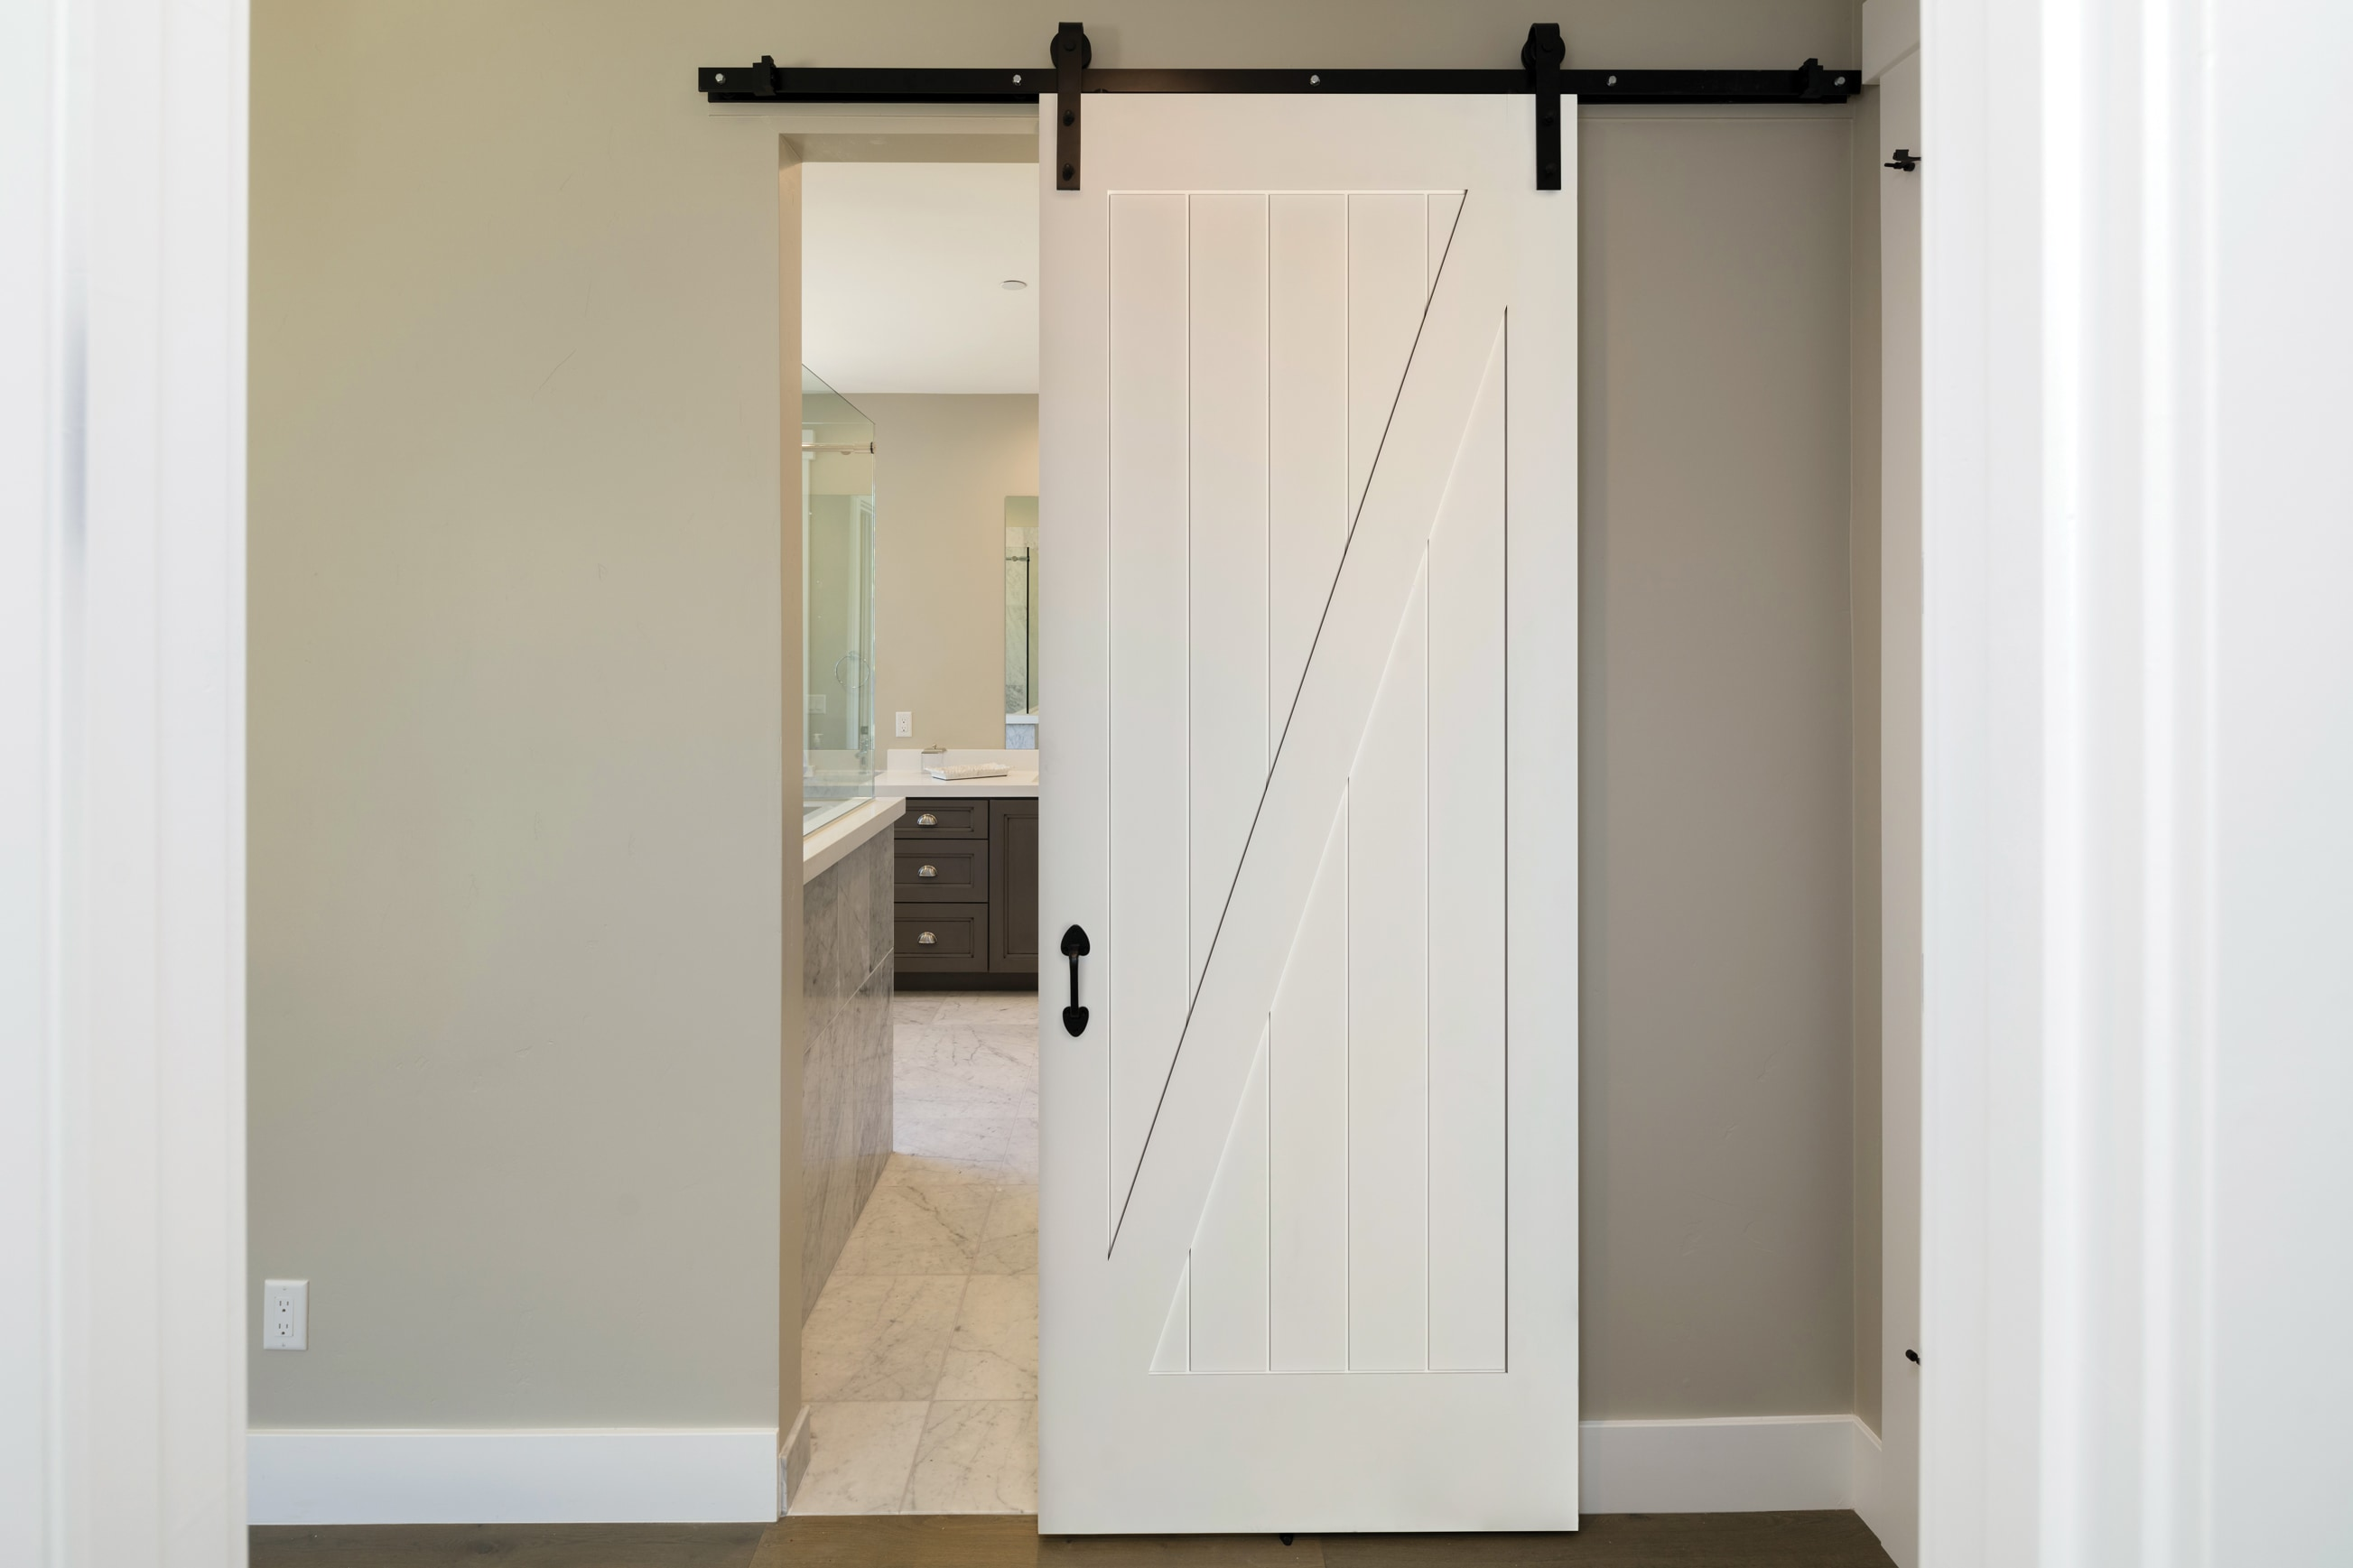 15 diy projects to do this winter break primed 1 panel z bar barn door with black hardware sku 15206161 planetlyrics Image collections